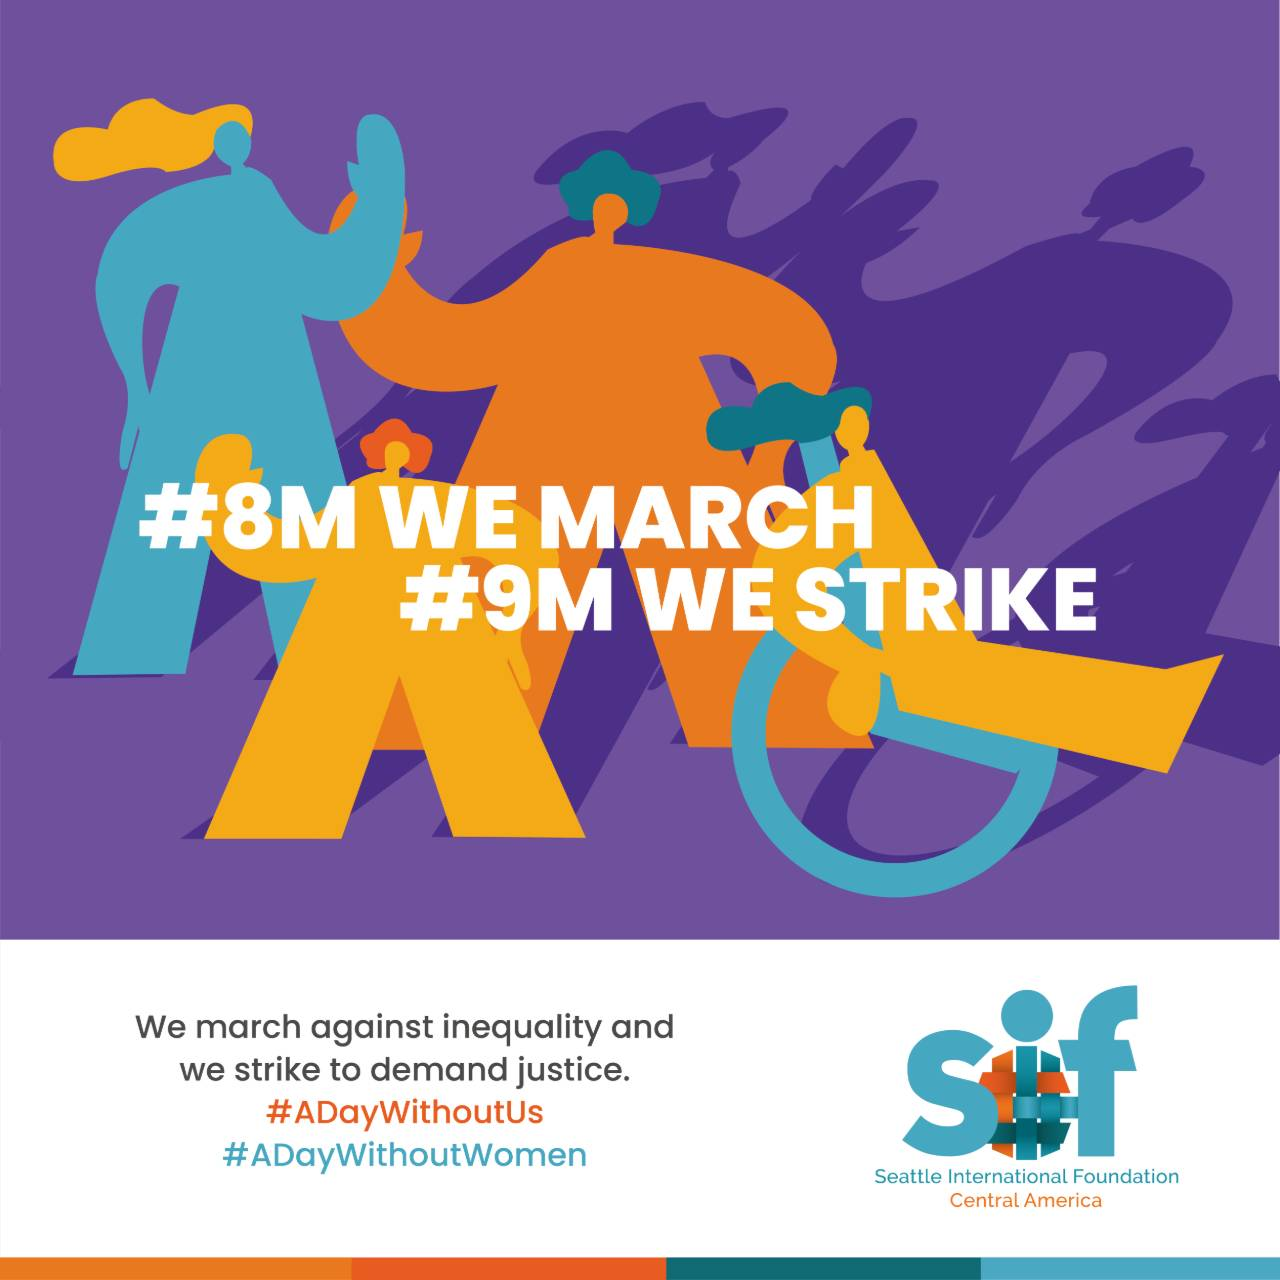 #8M We March, #9M We Strike